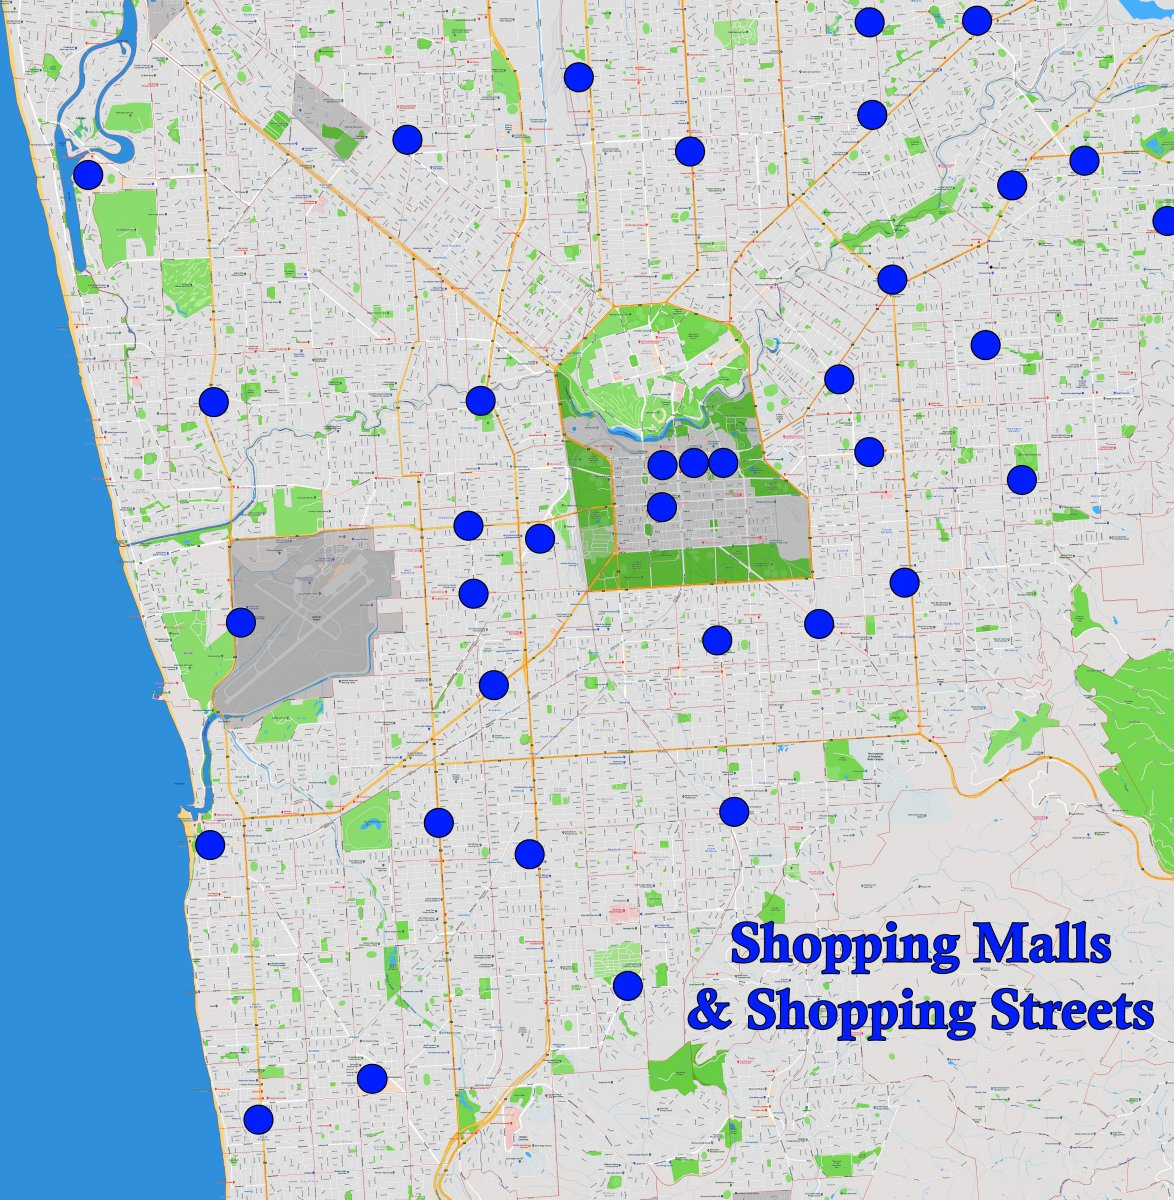 Adelaide Suburb Map - Malls & Shopping Streets - April 2019 Smaller.jpg